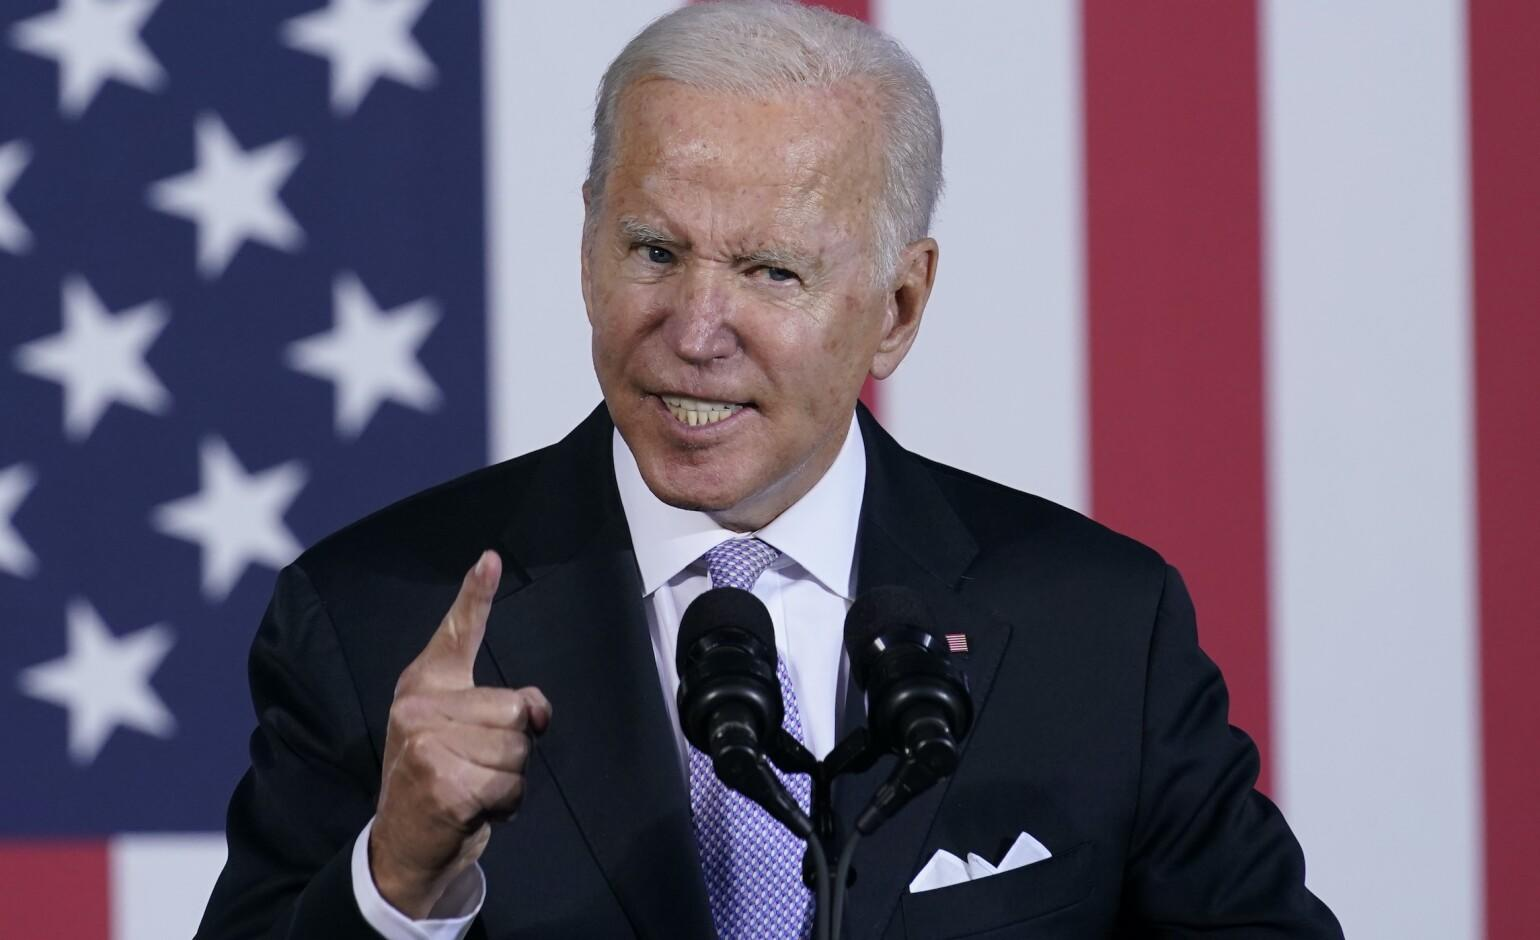 Biden serves up word salad, appearing to say he rode Amtrak as vice president for 36 years